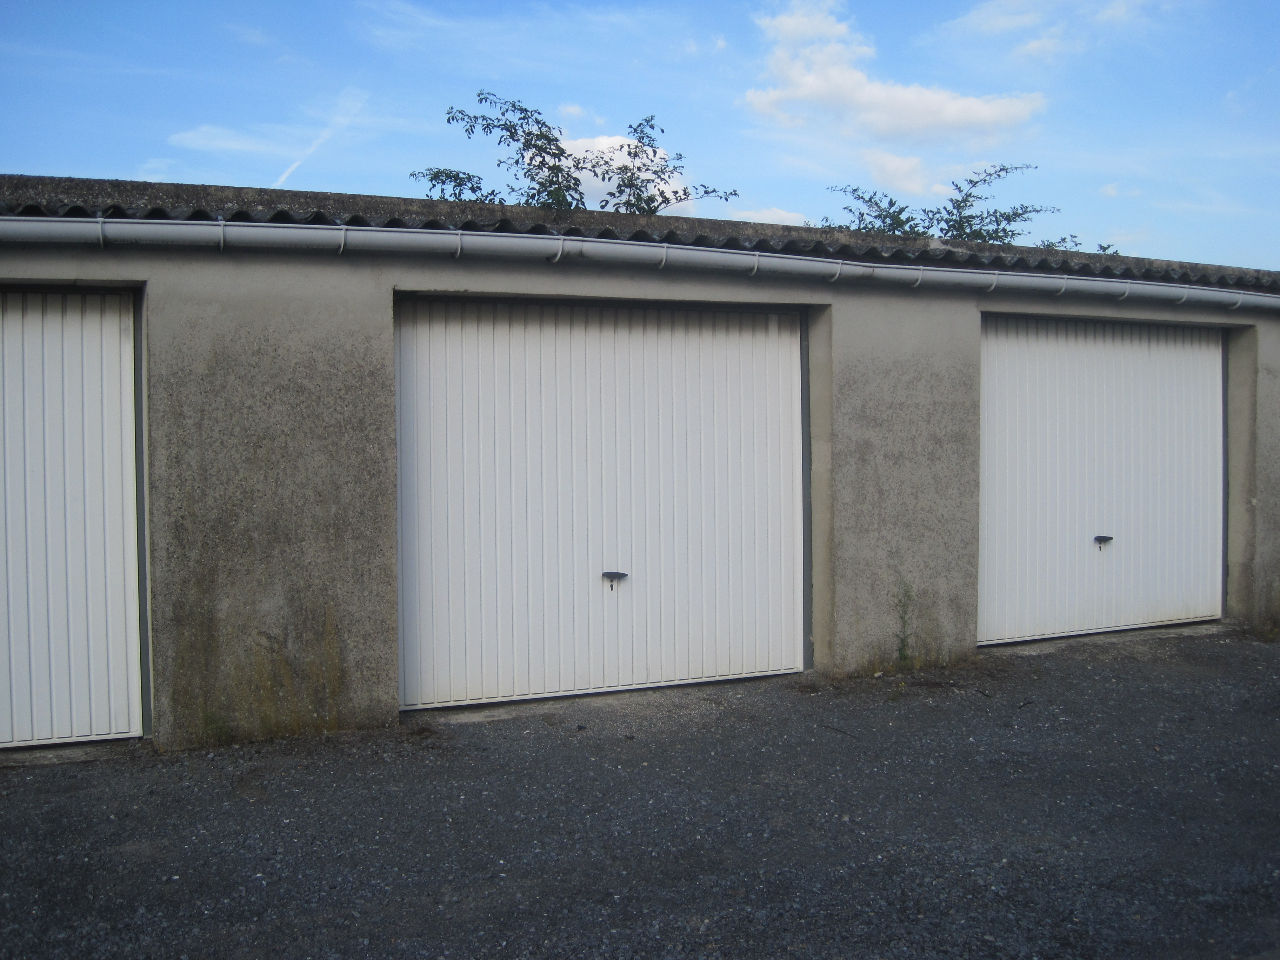 Location garage parking saint quentin 02100 sur le for Location garage landerneau